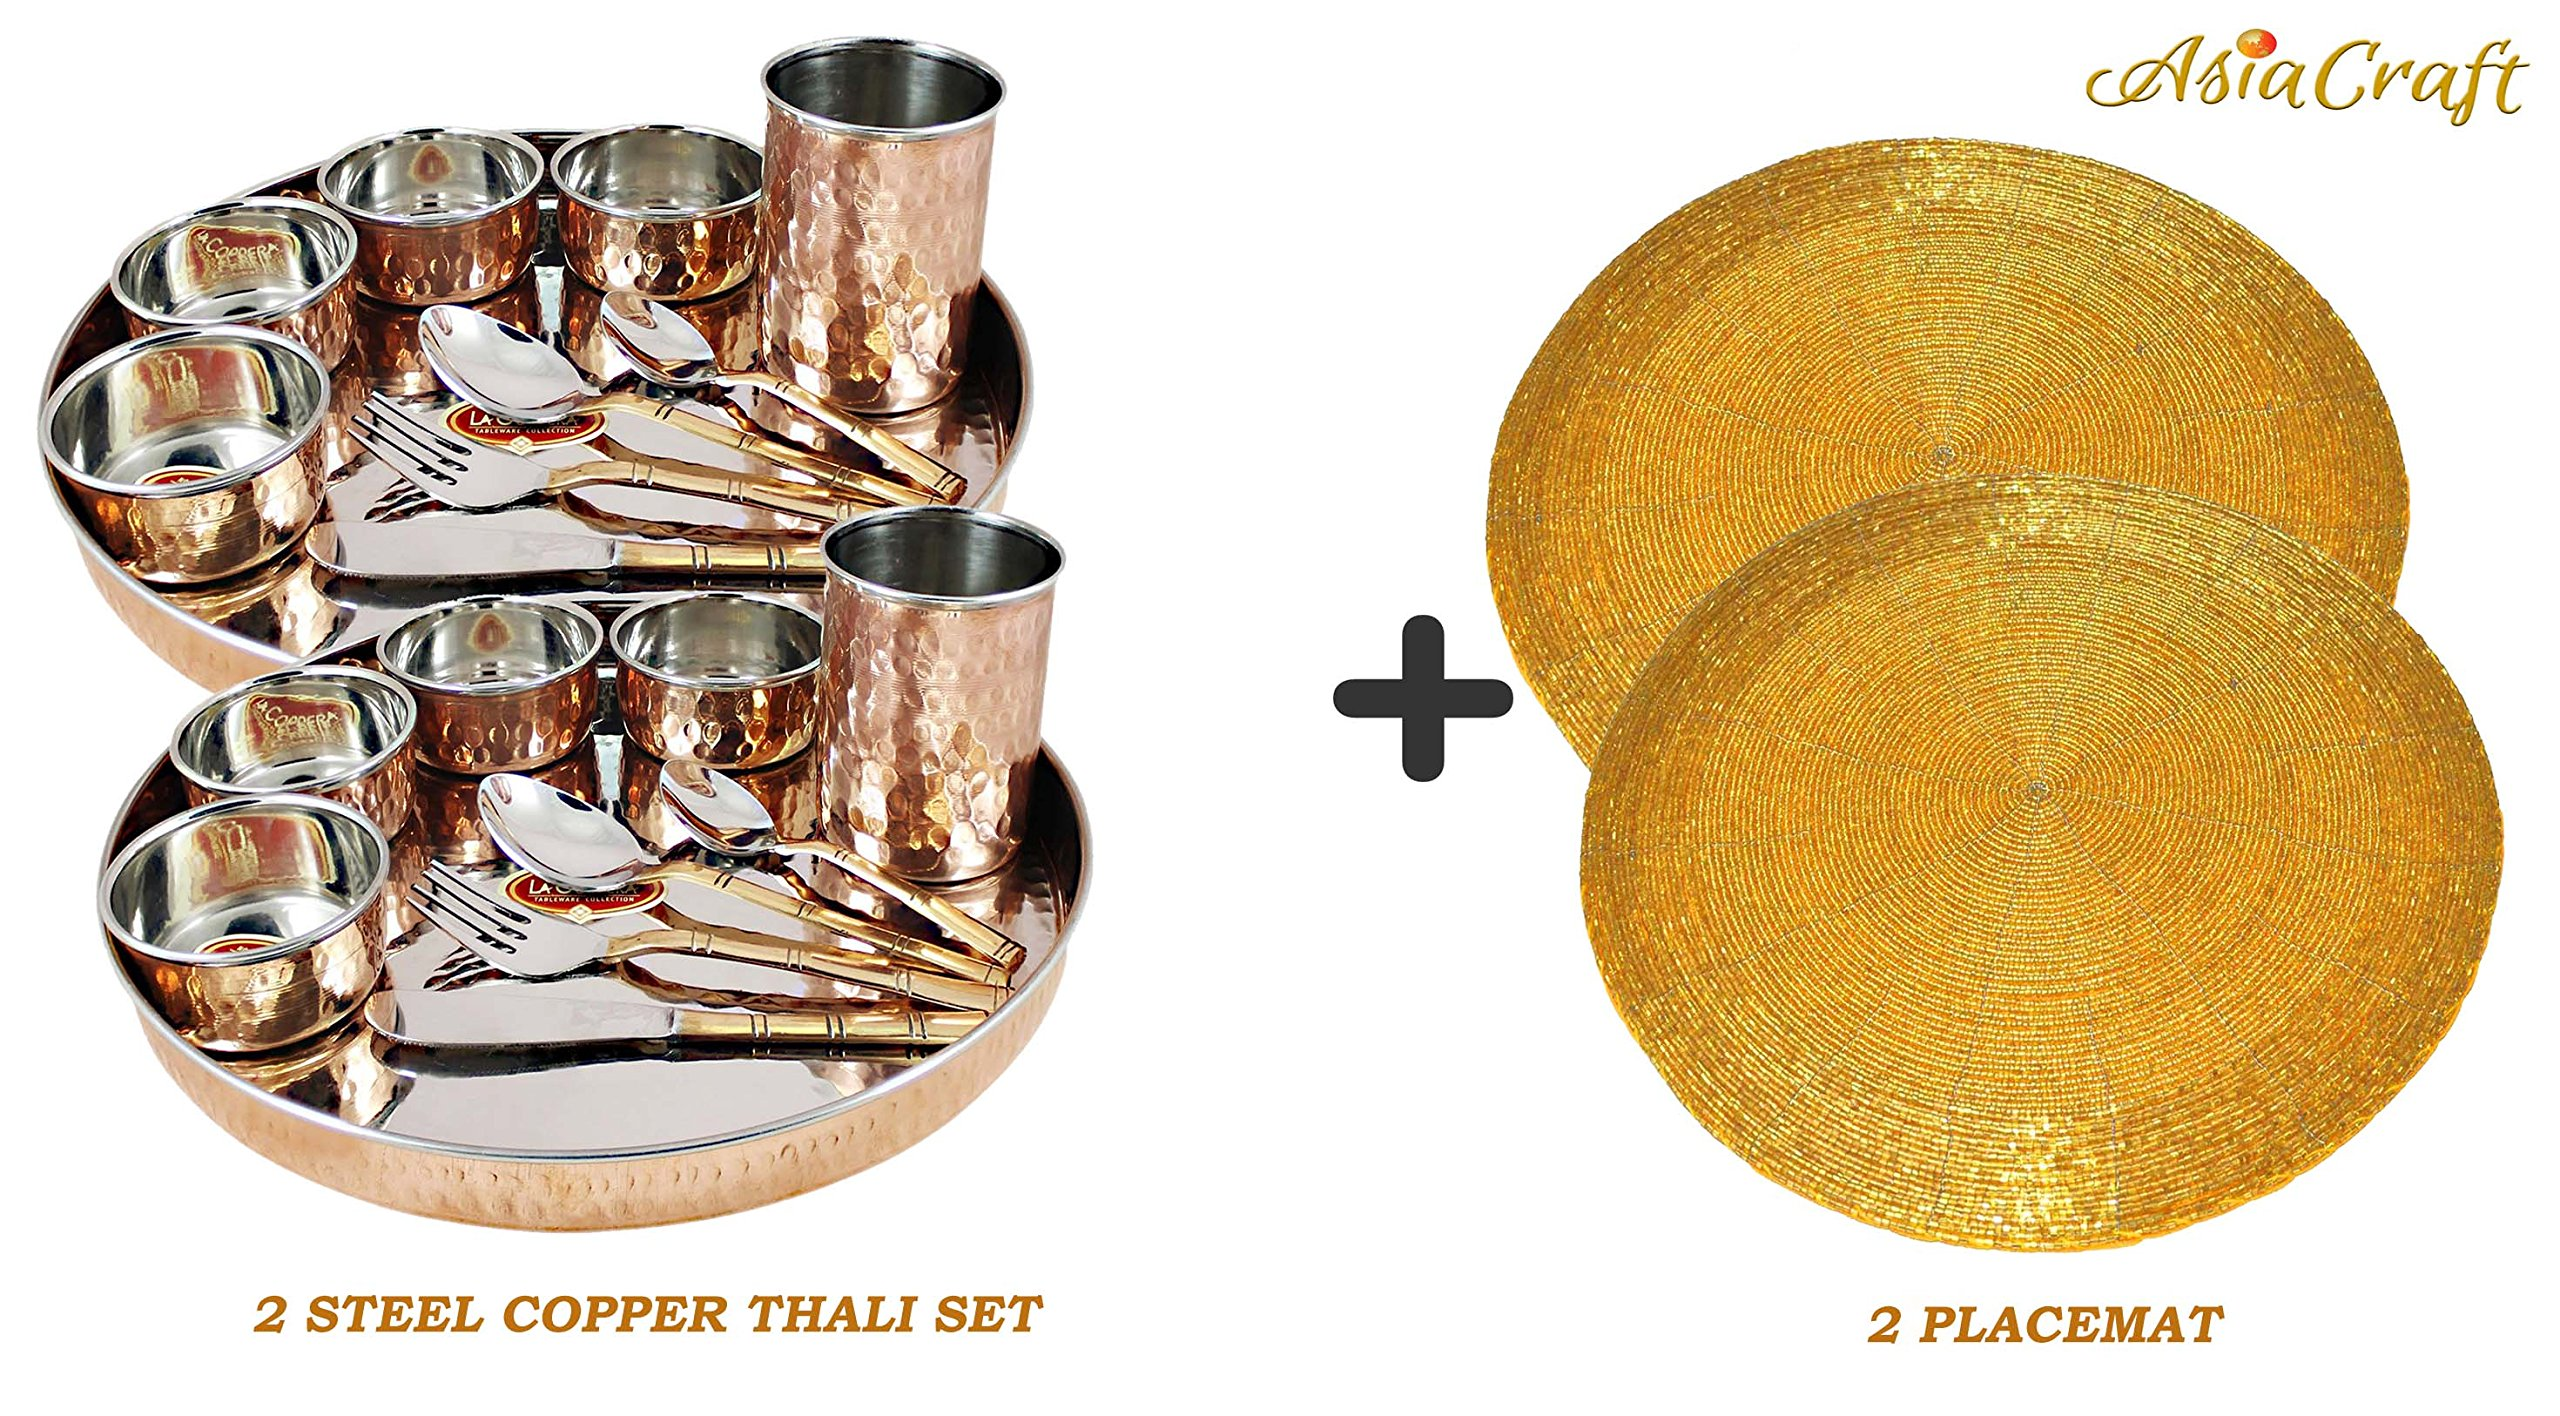 Asiacraft Service for 2,Copper Stainless Steel Large Dinner Plate Thali Set Dinnerware - Copper Dinner Set Online India With Placemat